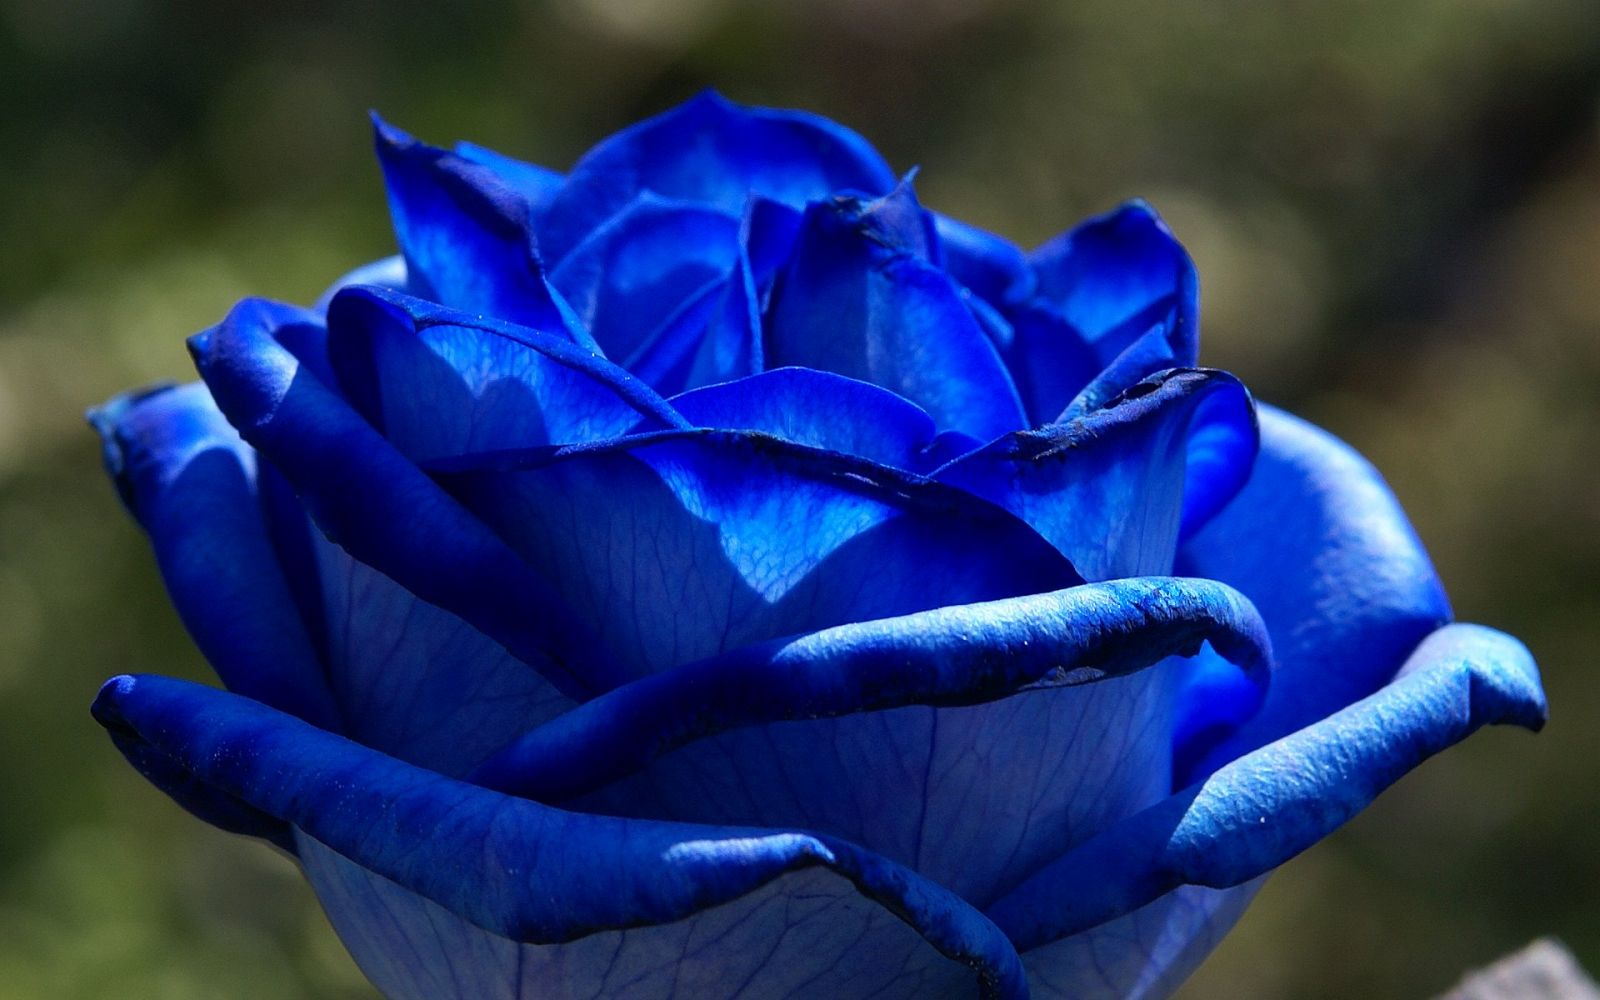 First blue rose